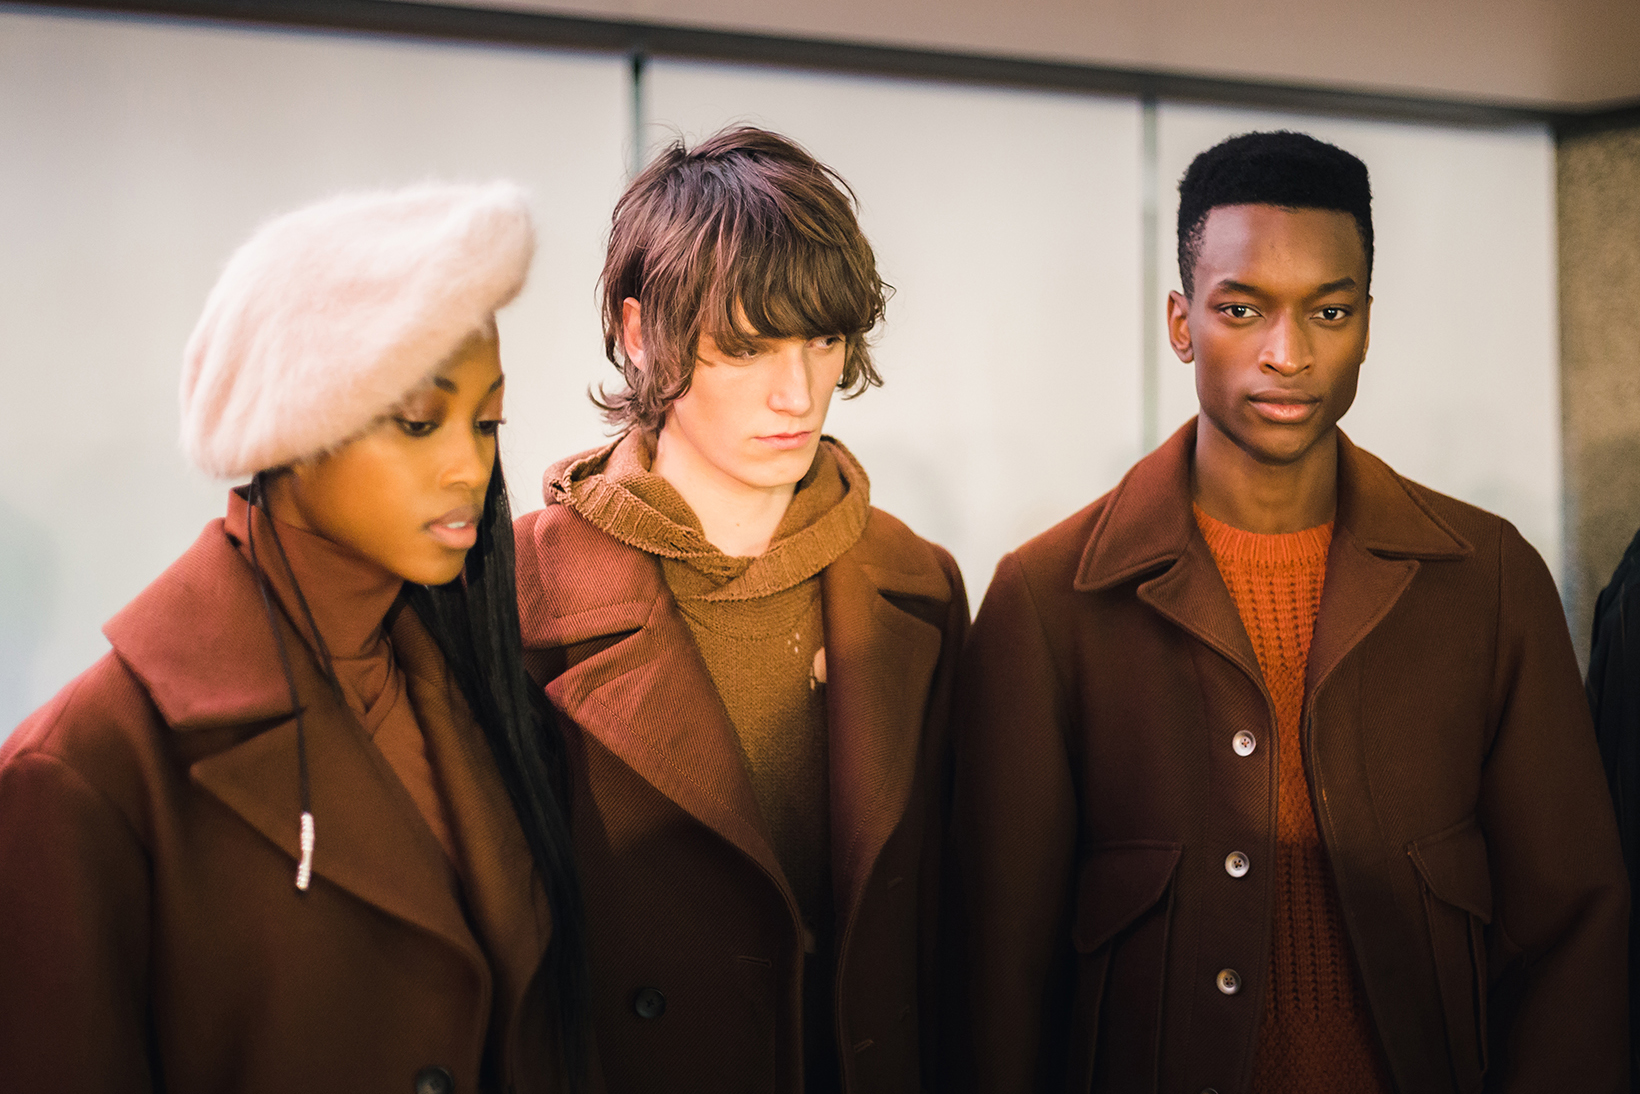 Mihara Yasuhiro London Fashion Week Men's 2017 Fall/Winter